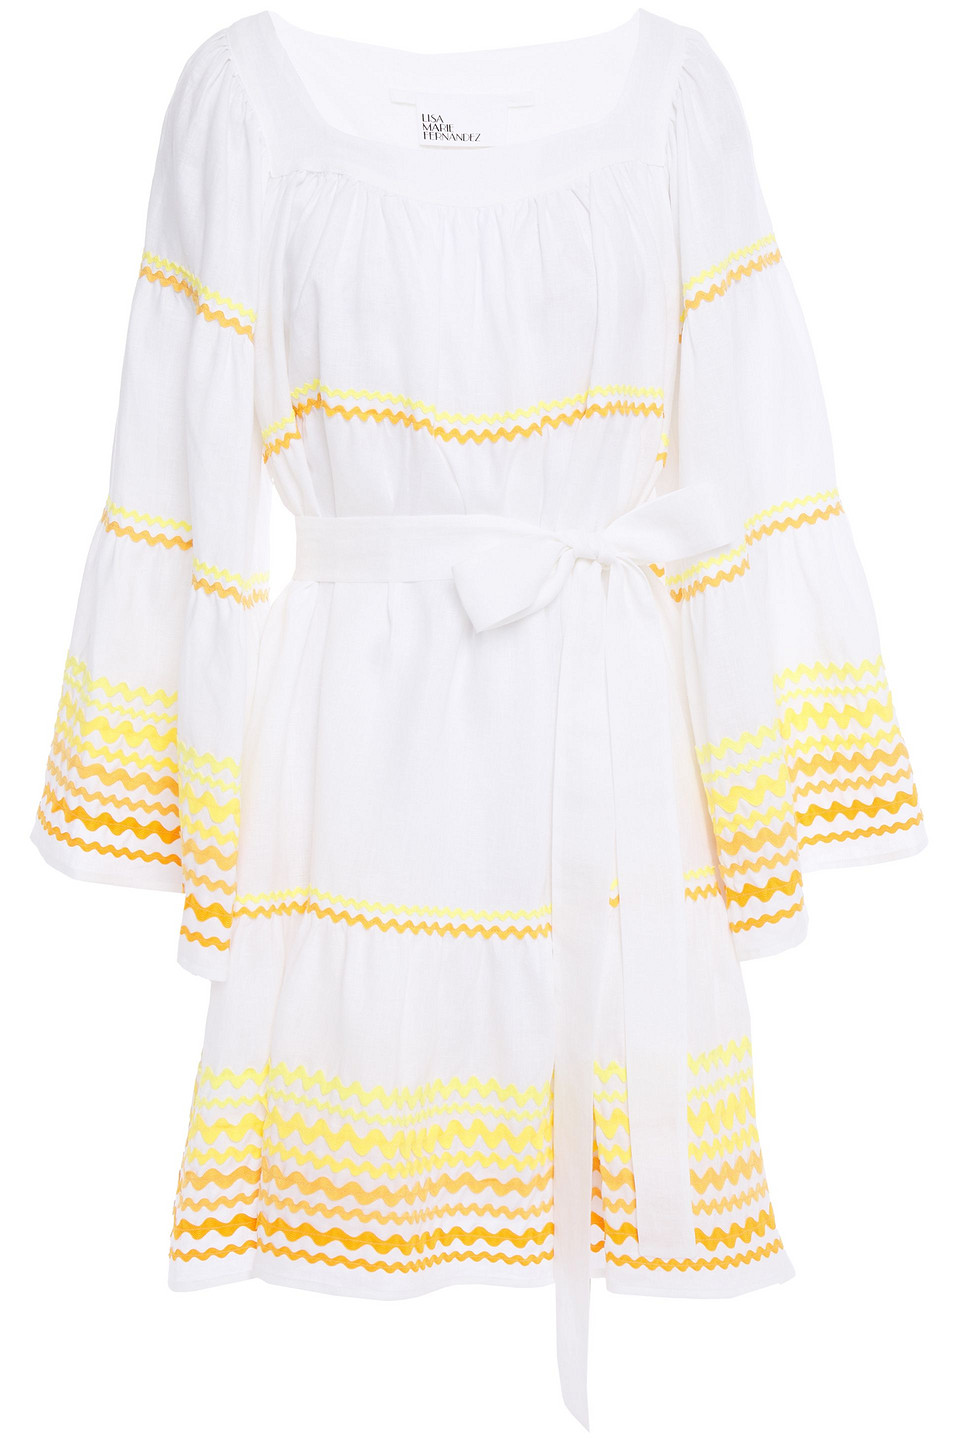 Lisa Marie Fernandez | Lisa Marie Fernandez Woman Belted Rickrack-trimmed Linen Mini Dress White | Clouty